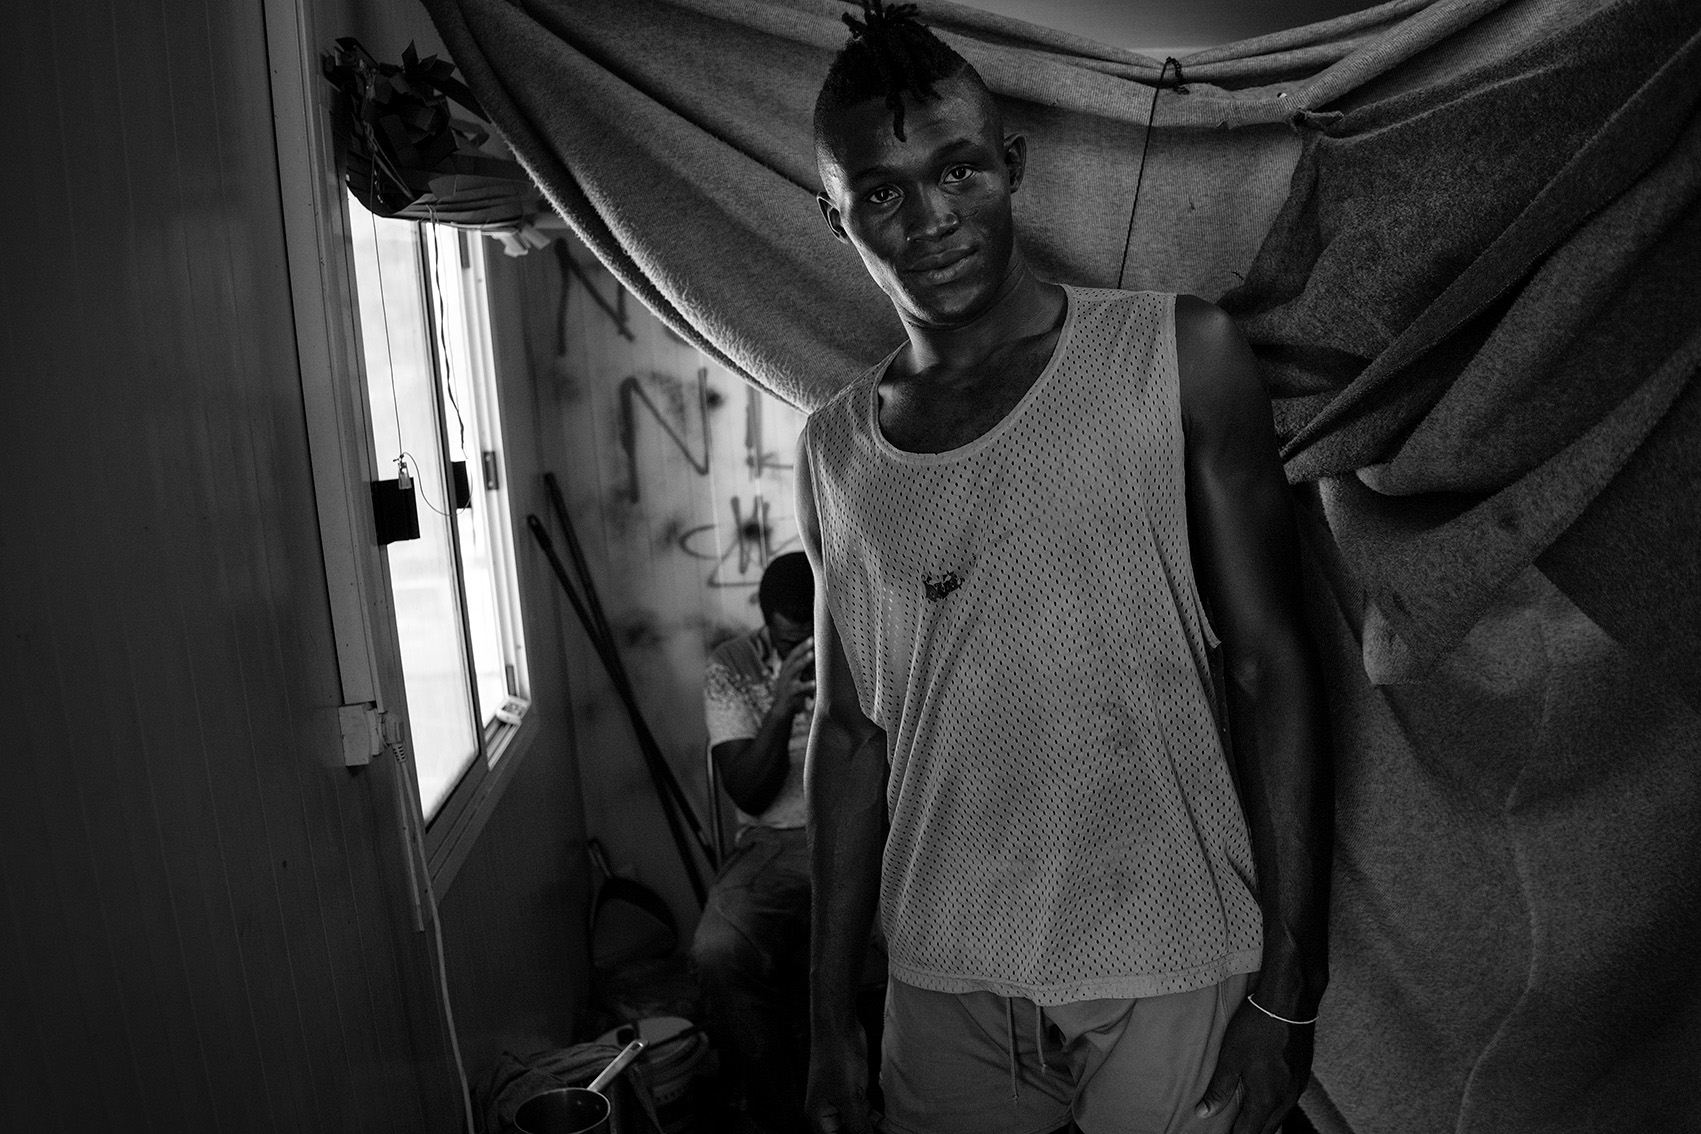 Ali, a professional football player from Guinee, inside his container at the refugee camp Moria, Lesbos, Greece